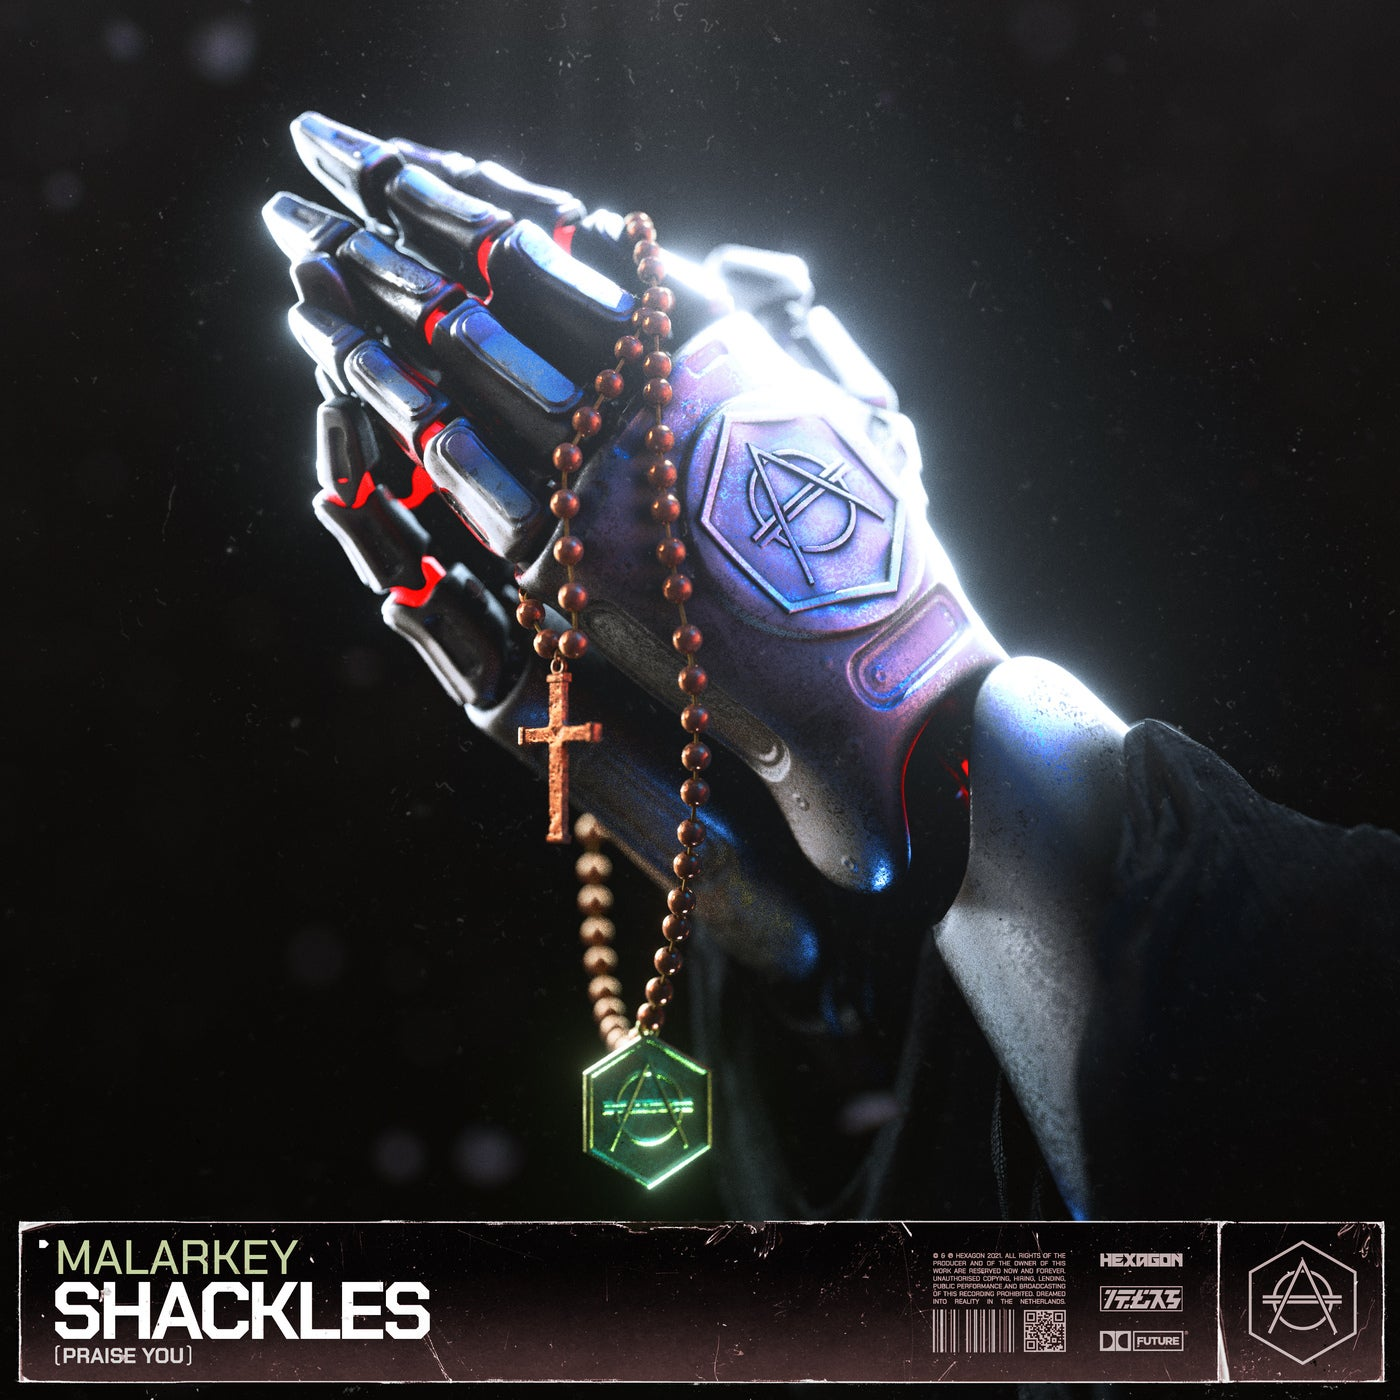 Shackles (Praise You)